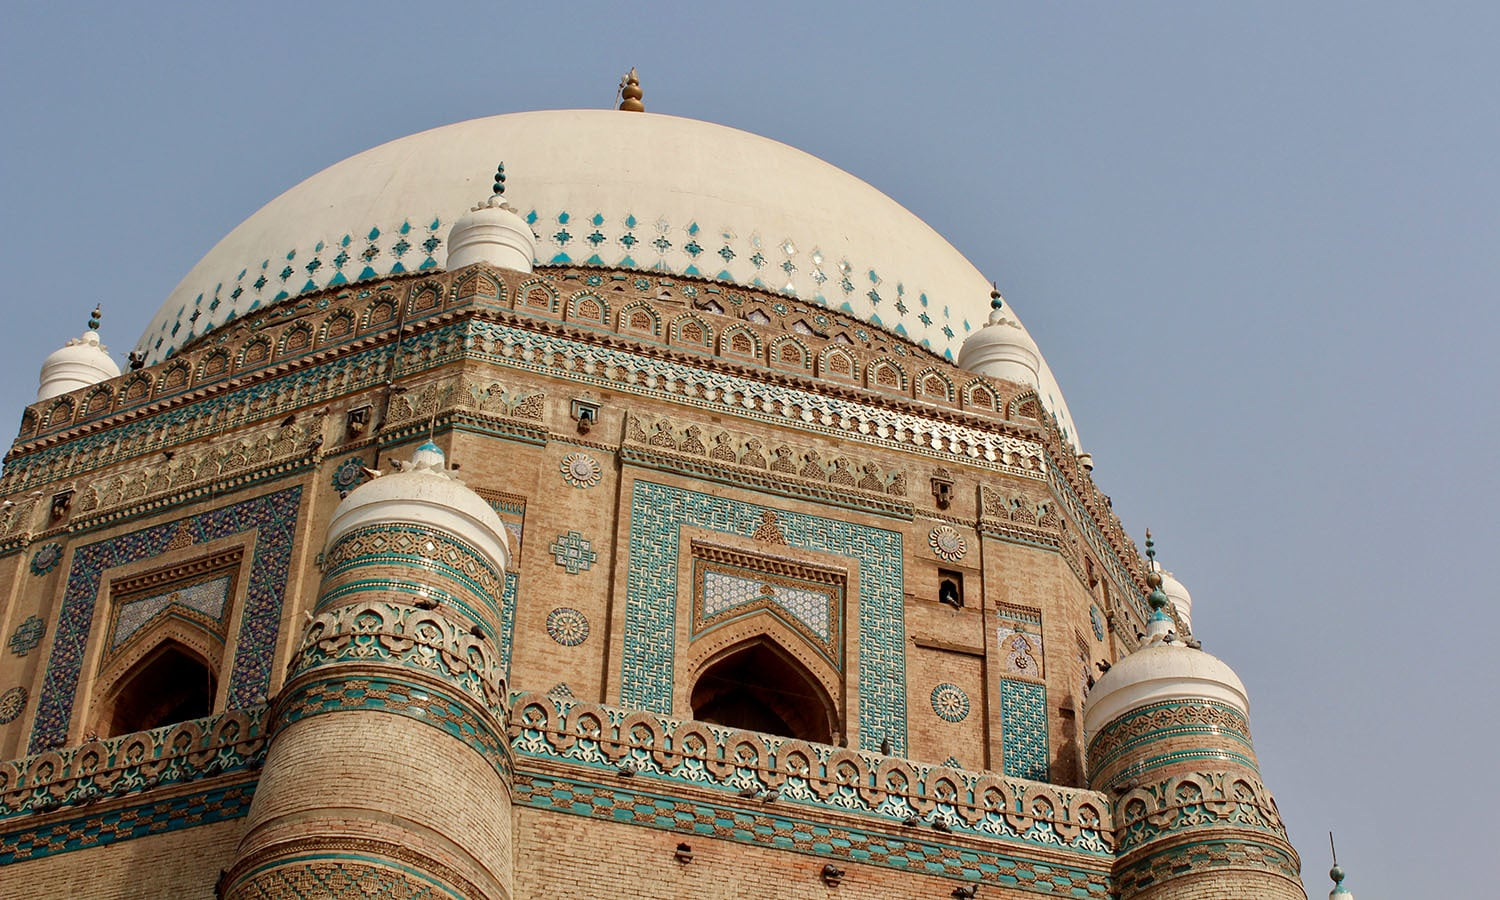 Shrine of Shah Rukn-i-Alam